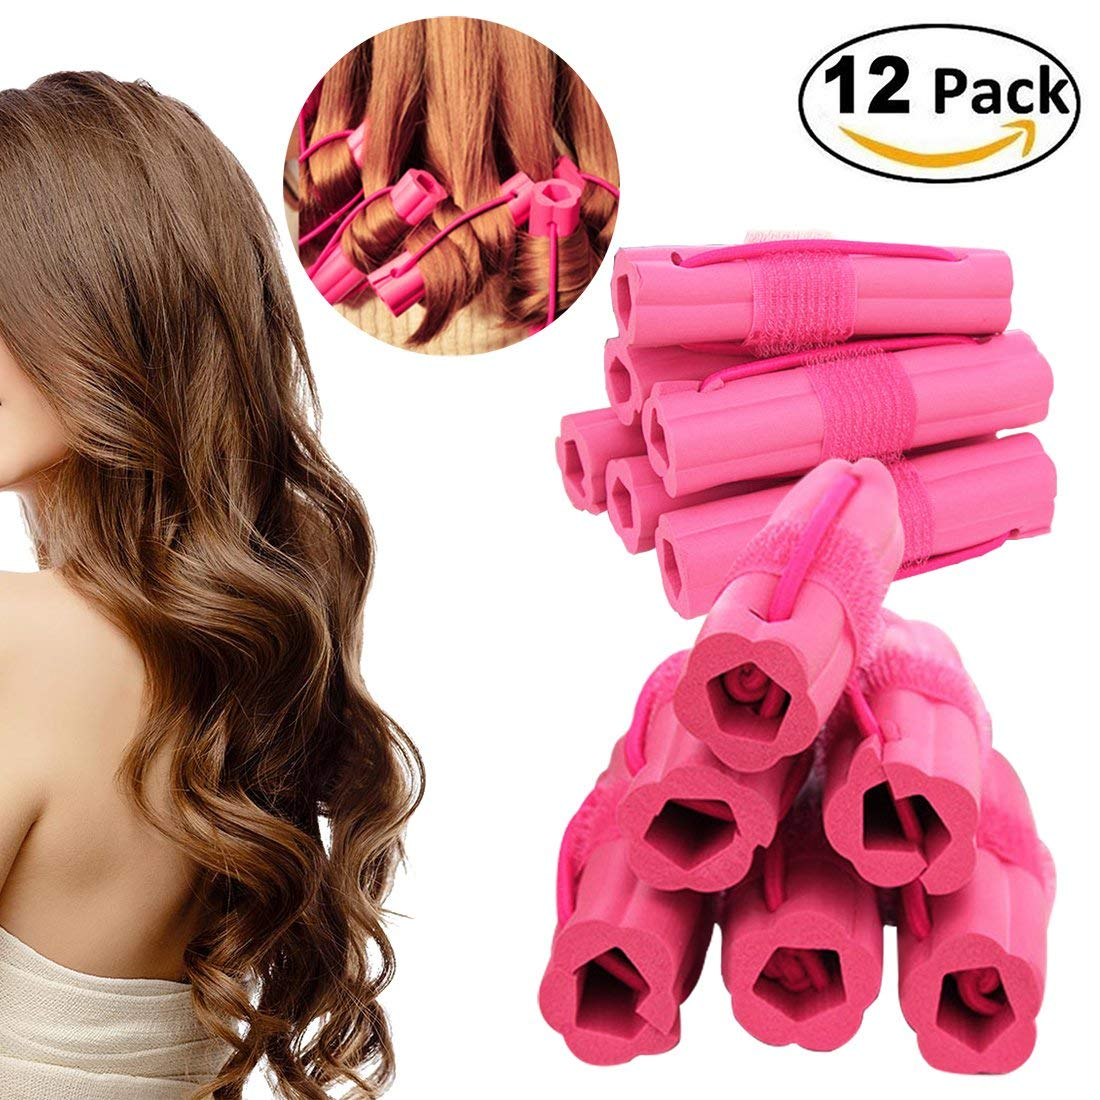 Hair Curlers, Foam Sponge Hair Curlers, Pillow Hair Curlers, No Heat Sleep Hair Roller for Long Middle-Long Thick & Thin Hair, Flexible Sleeping Hair Curlers for Women & Girls, 12 Pcs Set - Rose Red